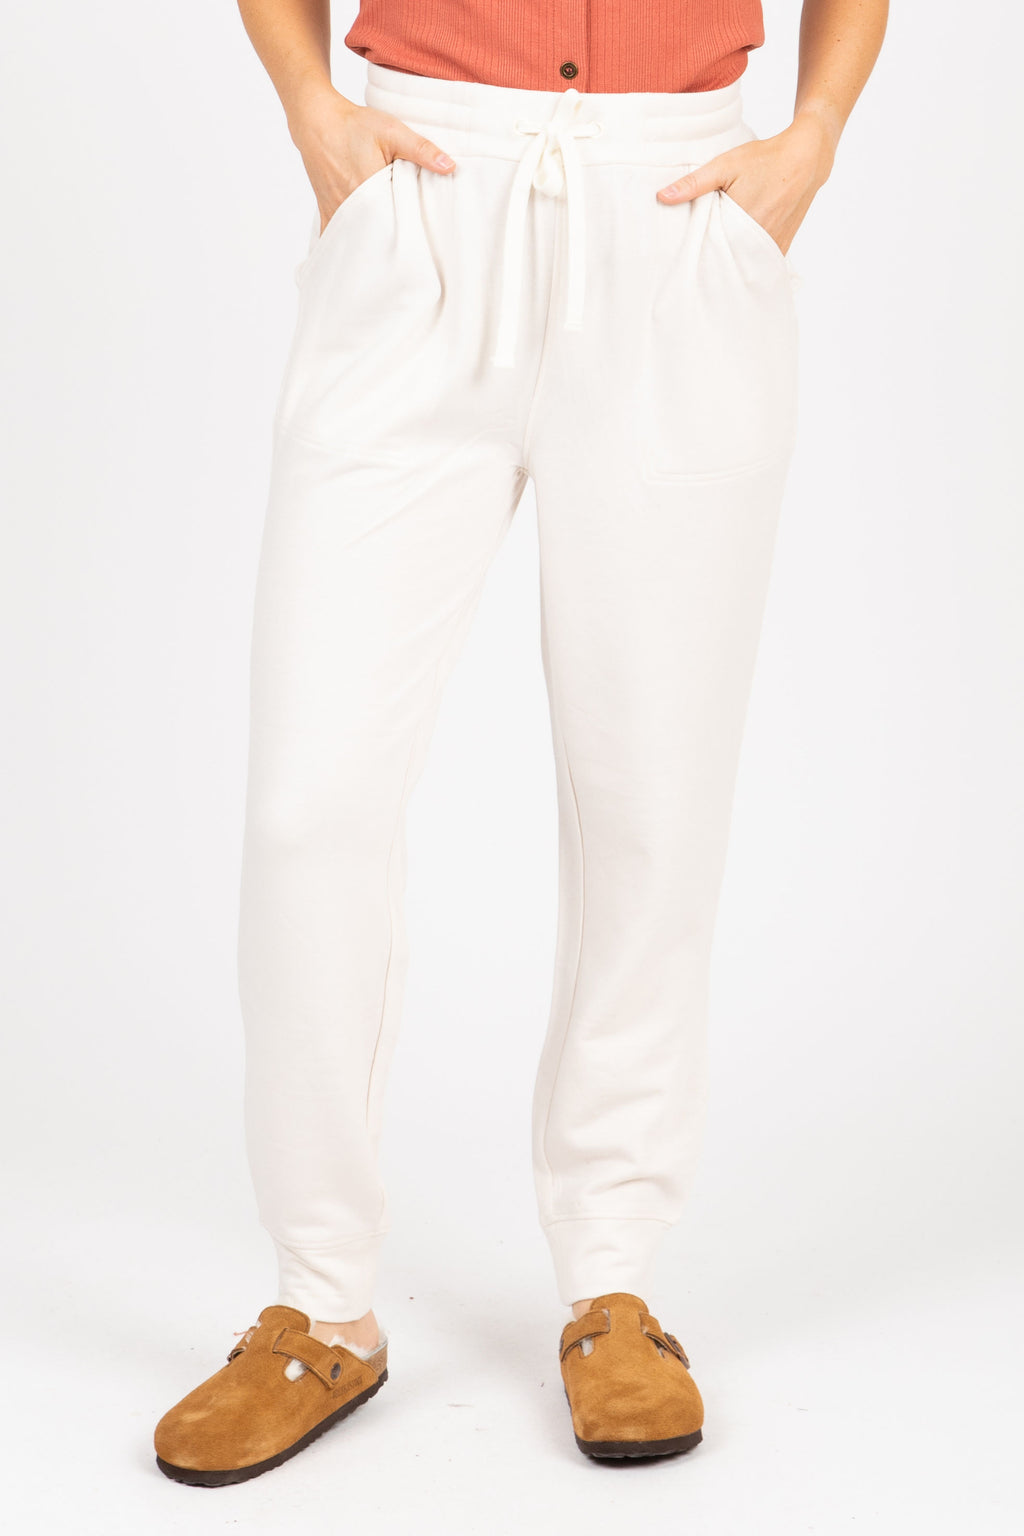 The Sidecar Lounge Pants in Heathered Ivory, studio shoot; front view